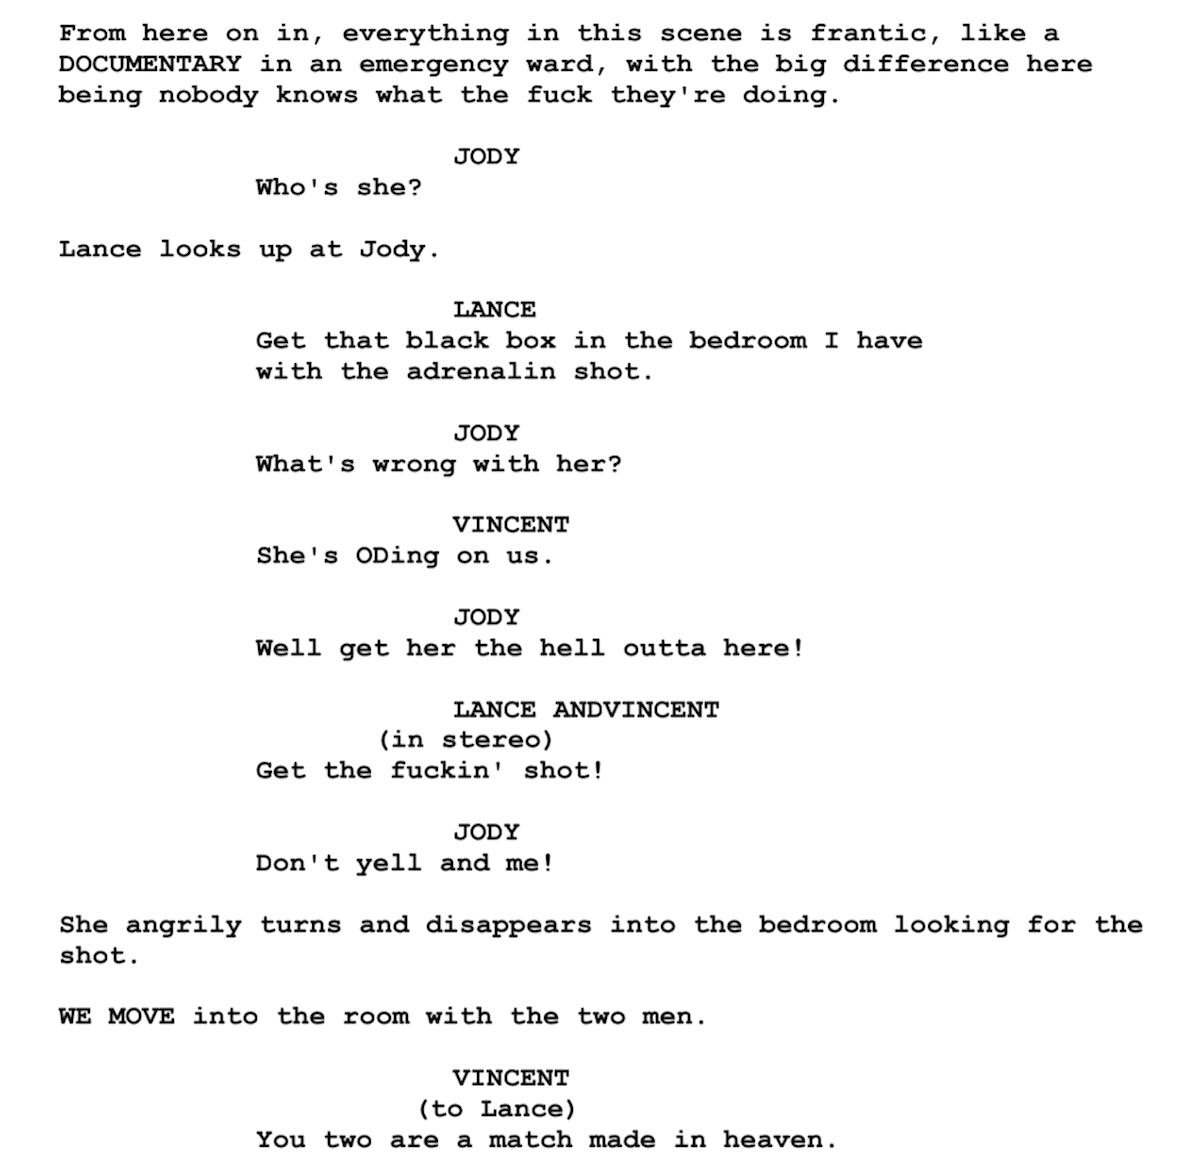 Screenplay Examples - Pulp Fiction Script - Screenplay Snippet 2